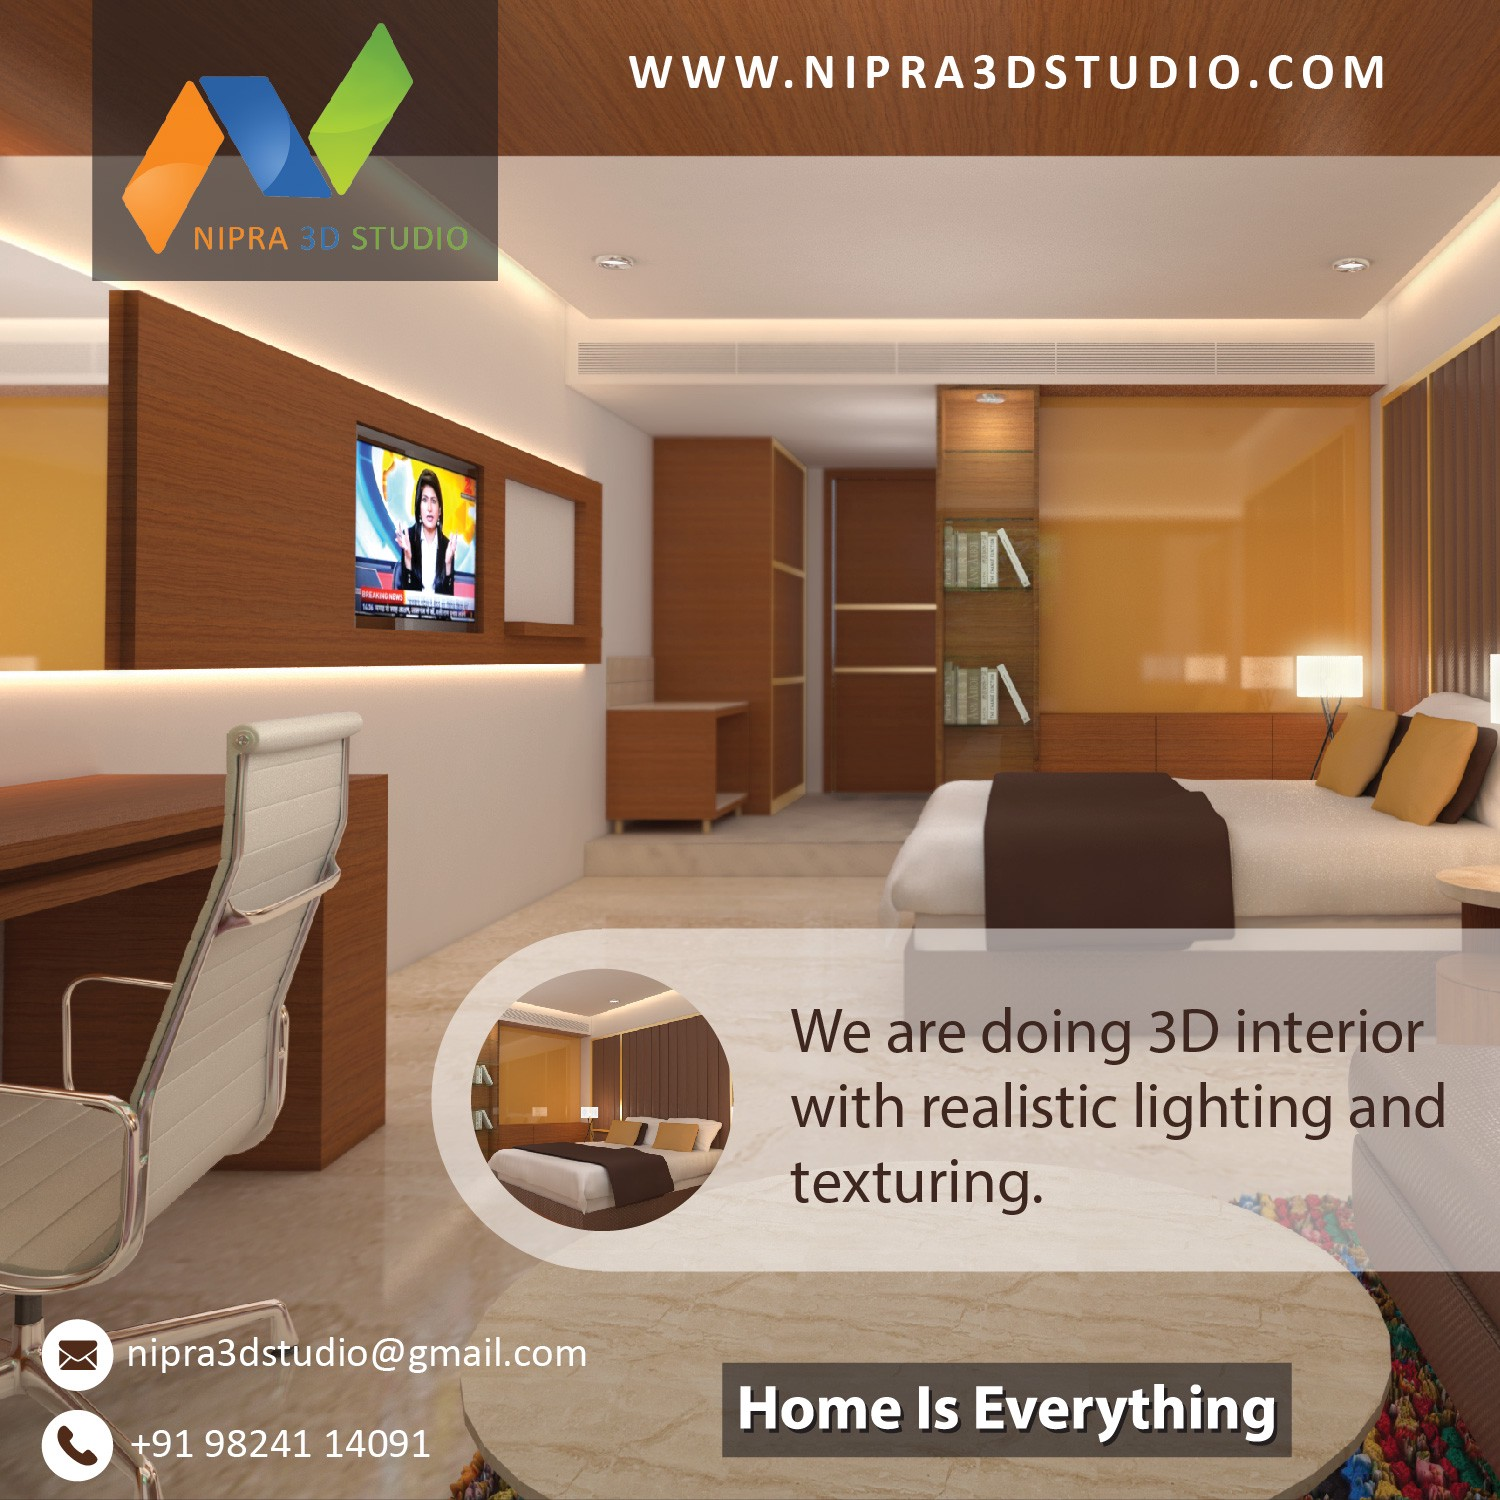 Either It Is A 3D Interior Designing Or Rendering Service, We Look For The  Best Solutions To Keep Our Customers Happy.